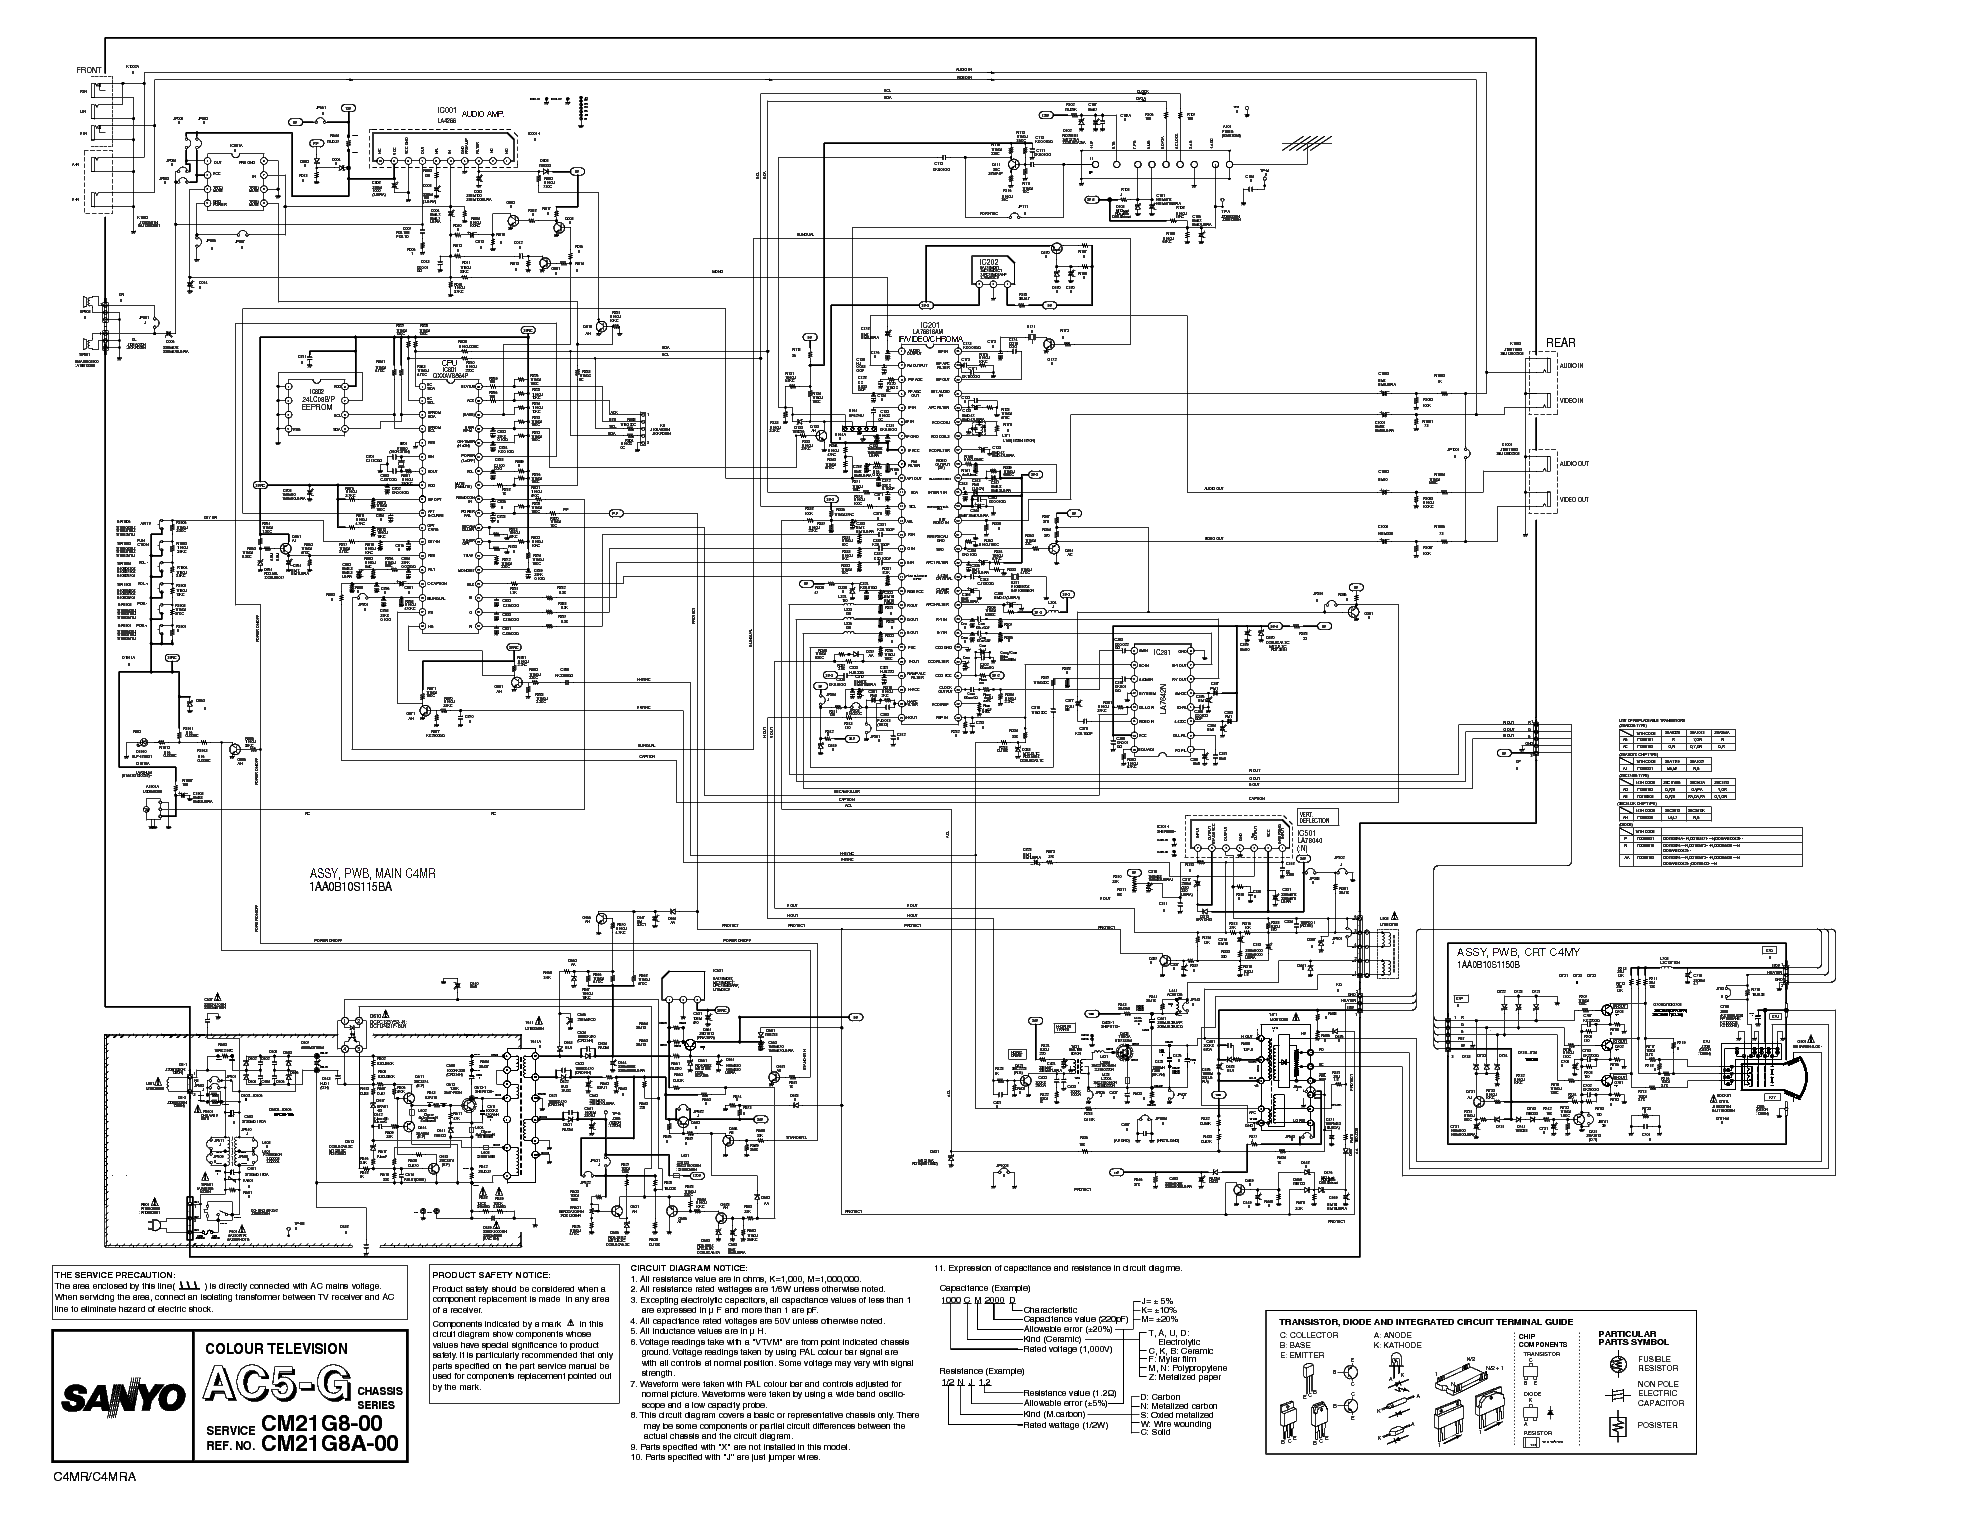 Sanyo Tv Ac 5g Chassis Service Manual Download Schematics